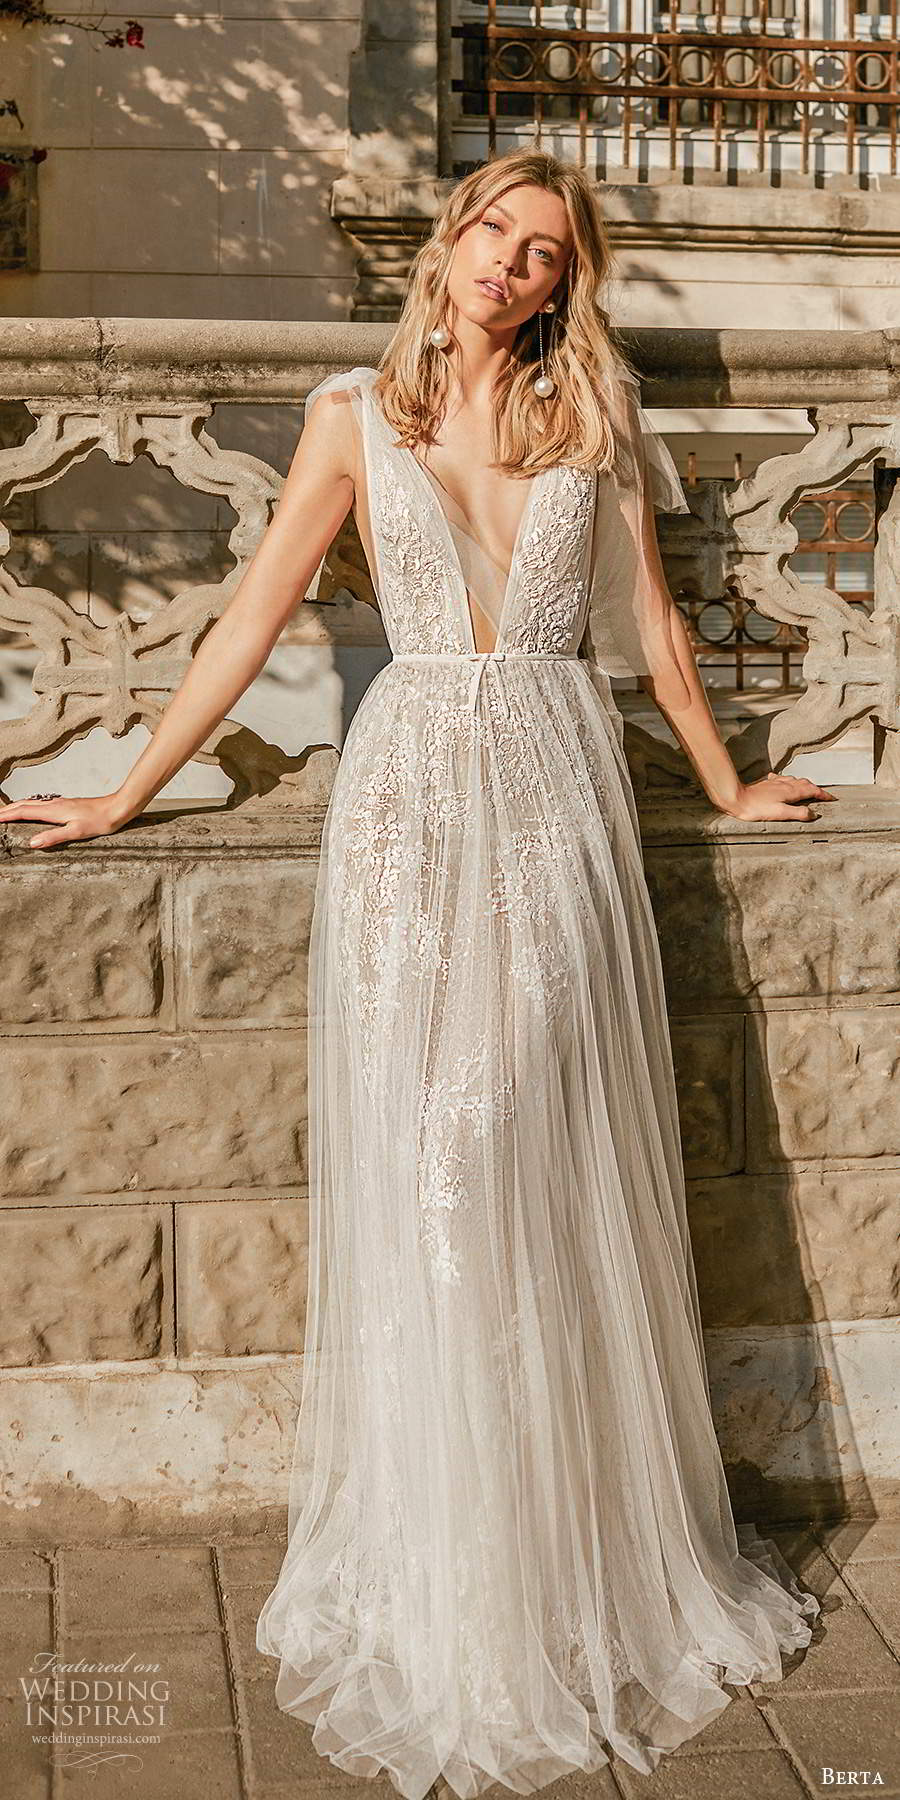 berta 2020 muse bridal sleeveless thick tie straps plunging v neckline fully embellished lace romantic ball gown a line wedding dress scoop back sweep train  (10) mv